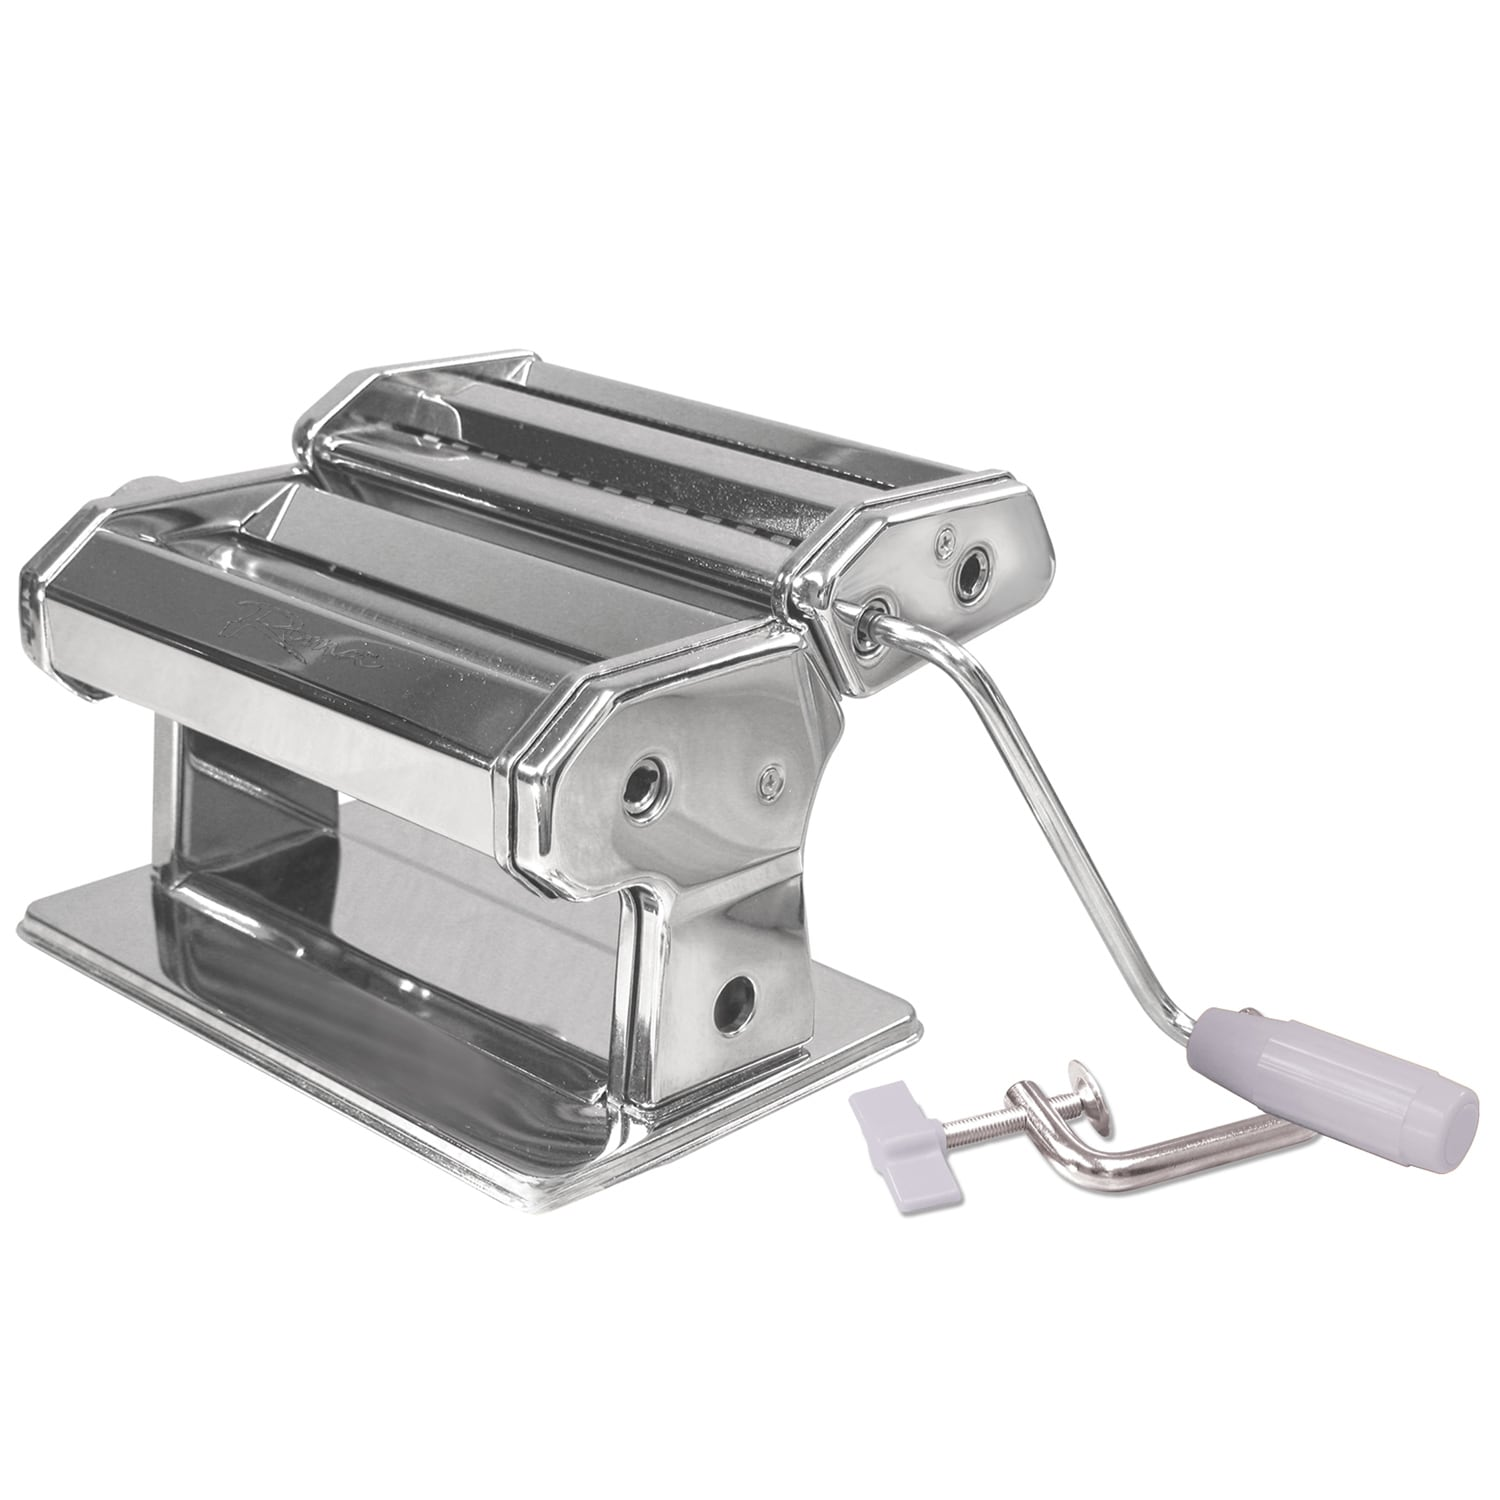 Weston 6-inch Traditional Style Pasta Machine